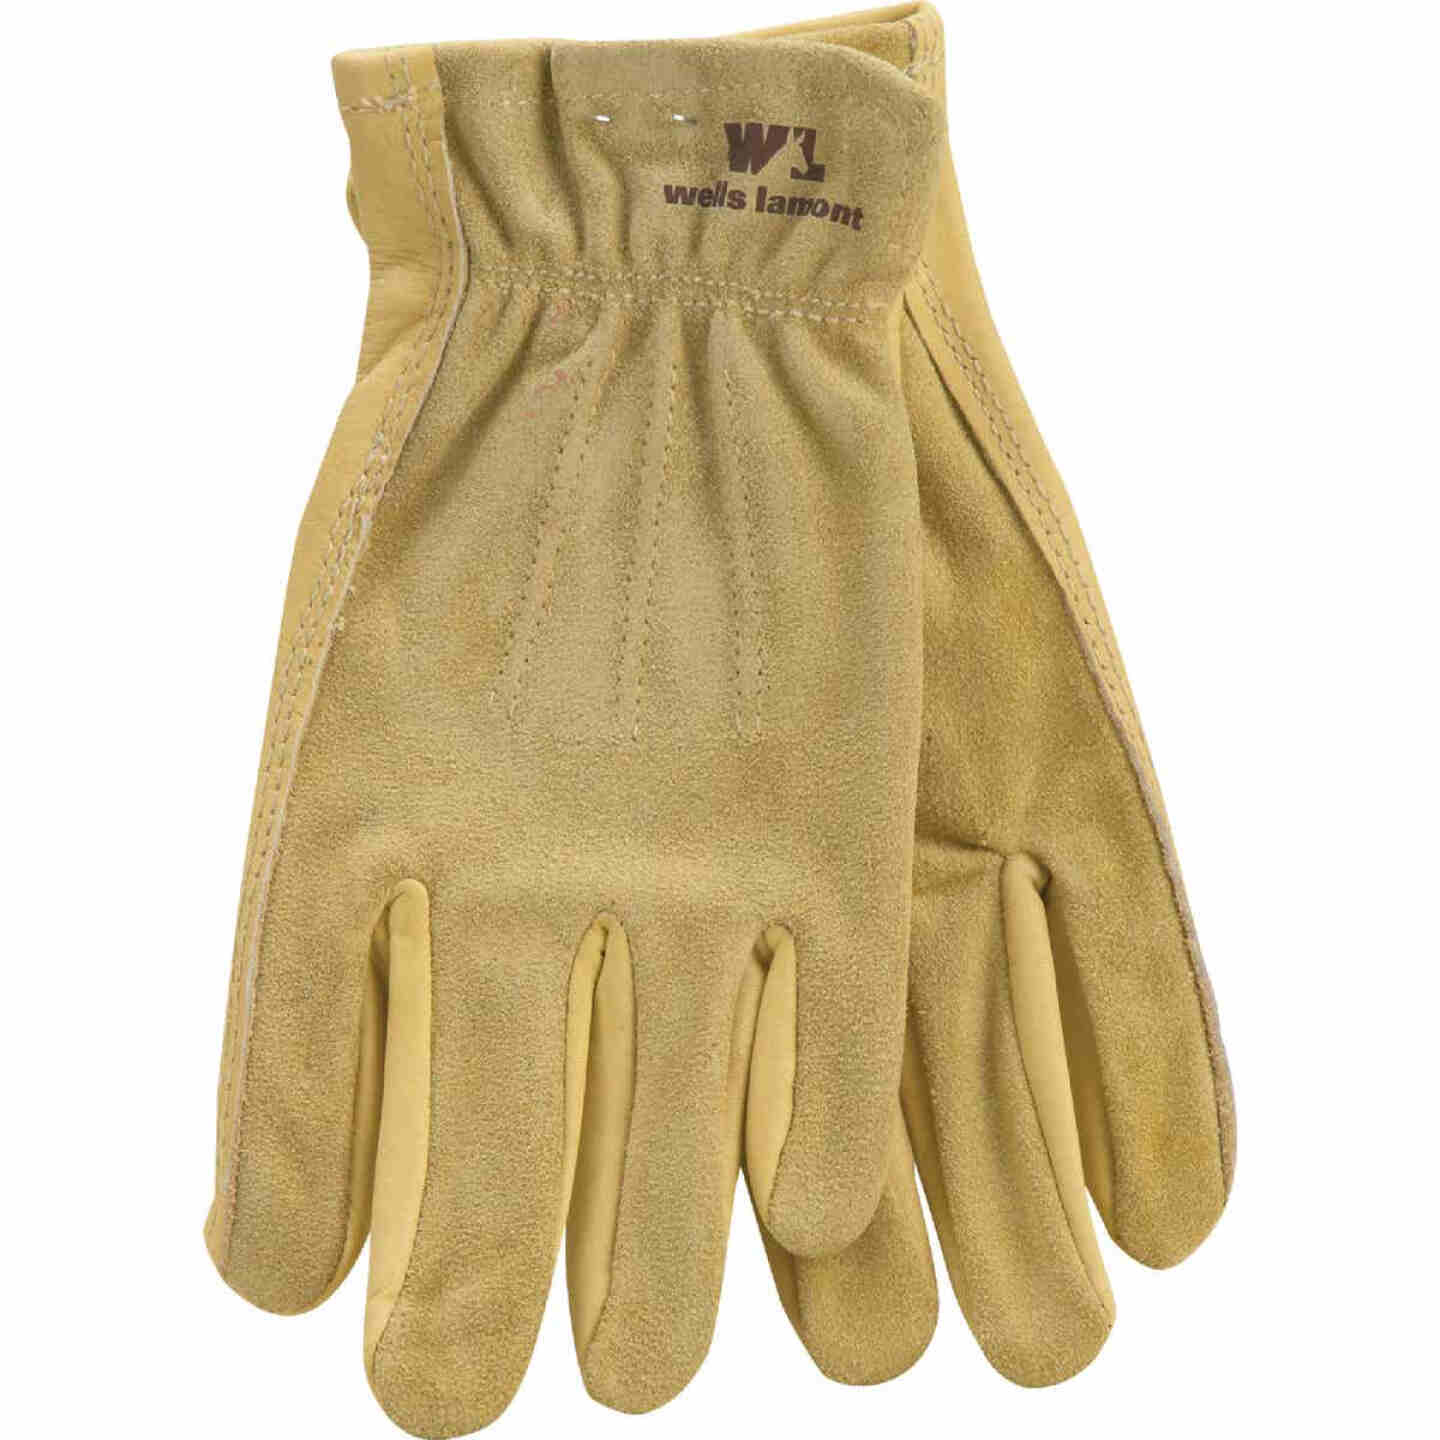 Wells Lamont Women's Small Grain Cowhide Leather Work Glove Image 1